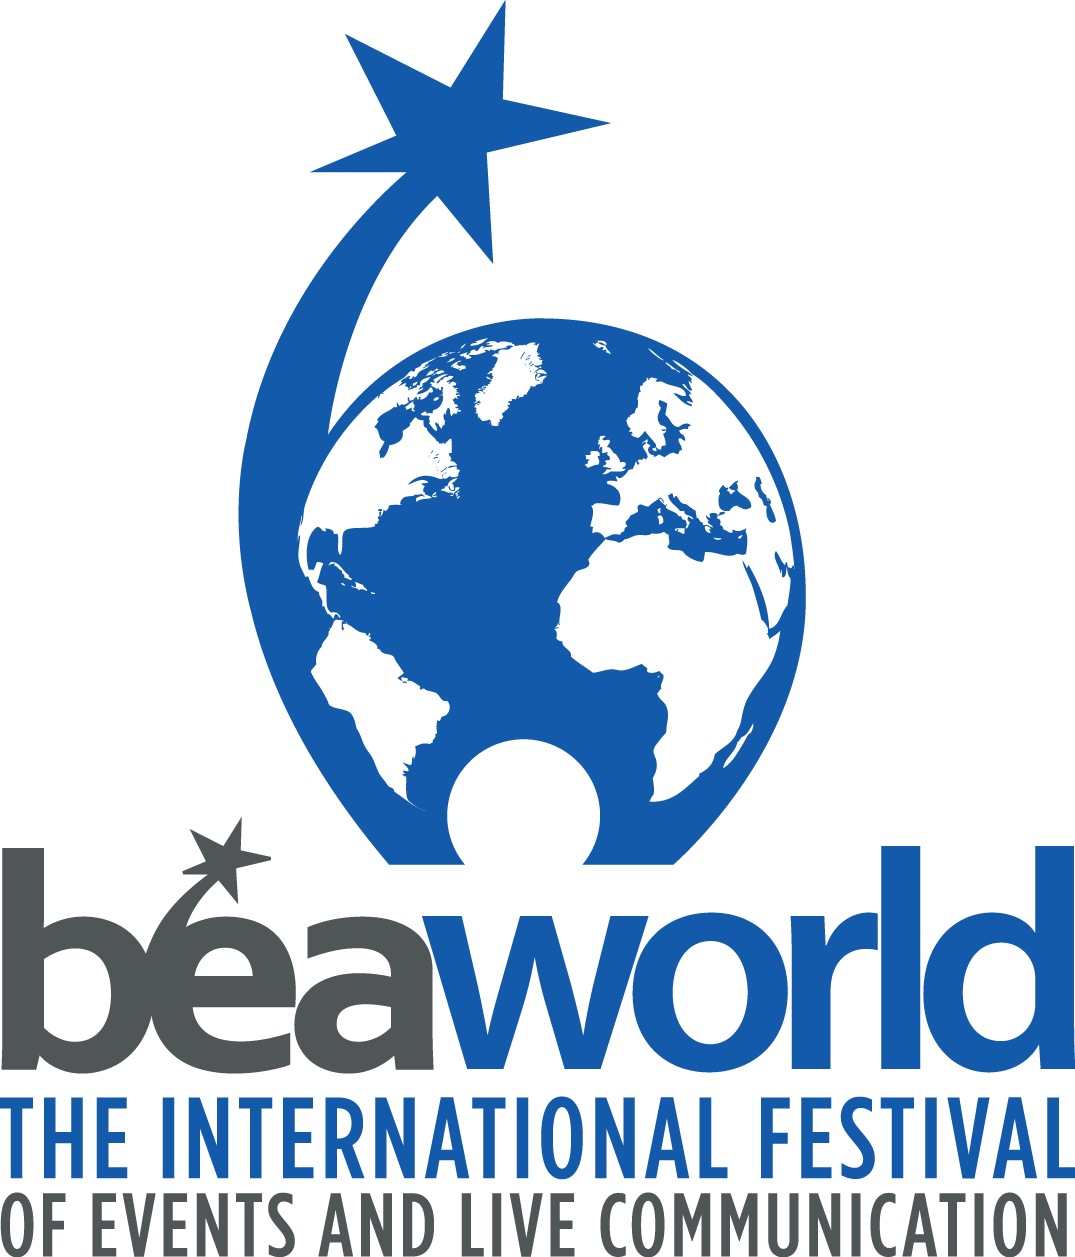 beaworld theinternationalfestival ver